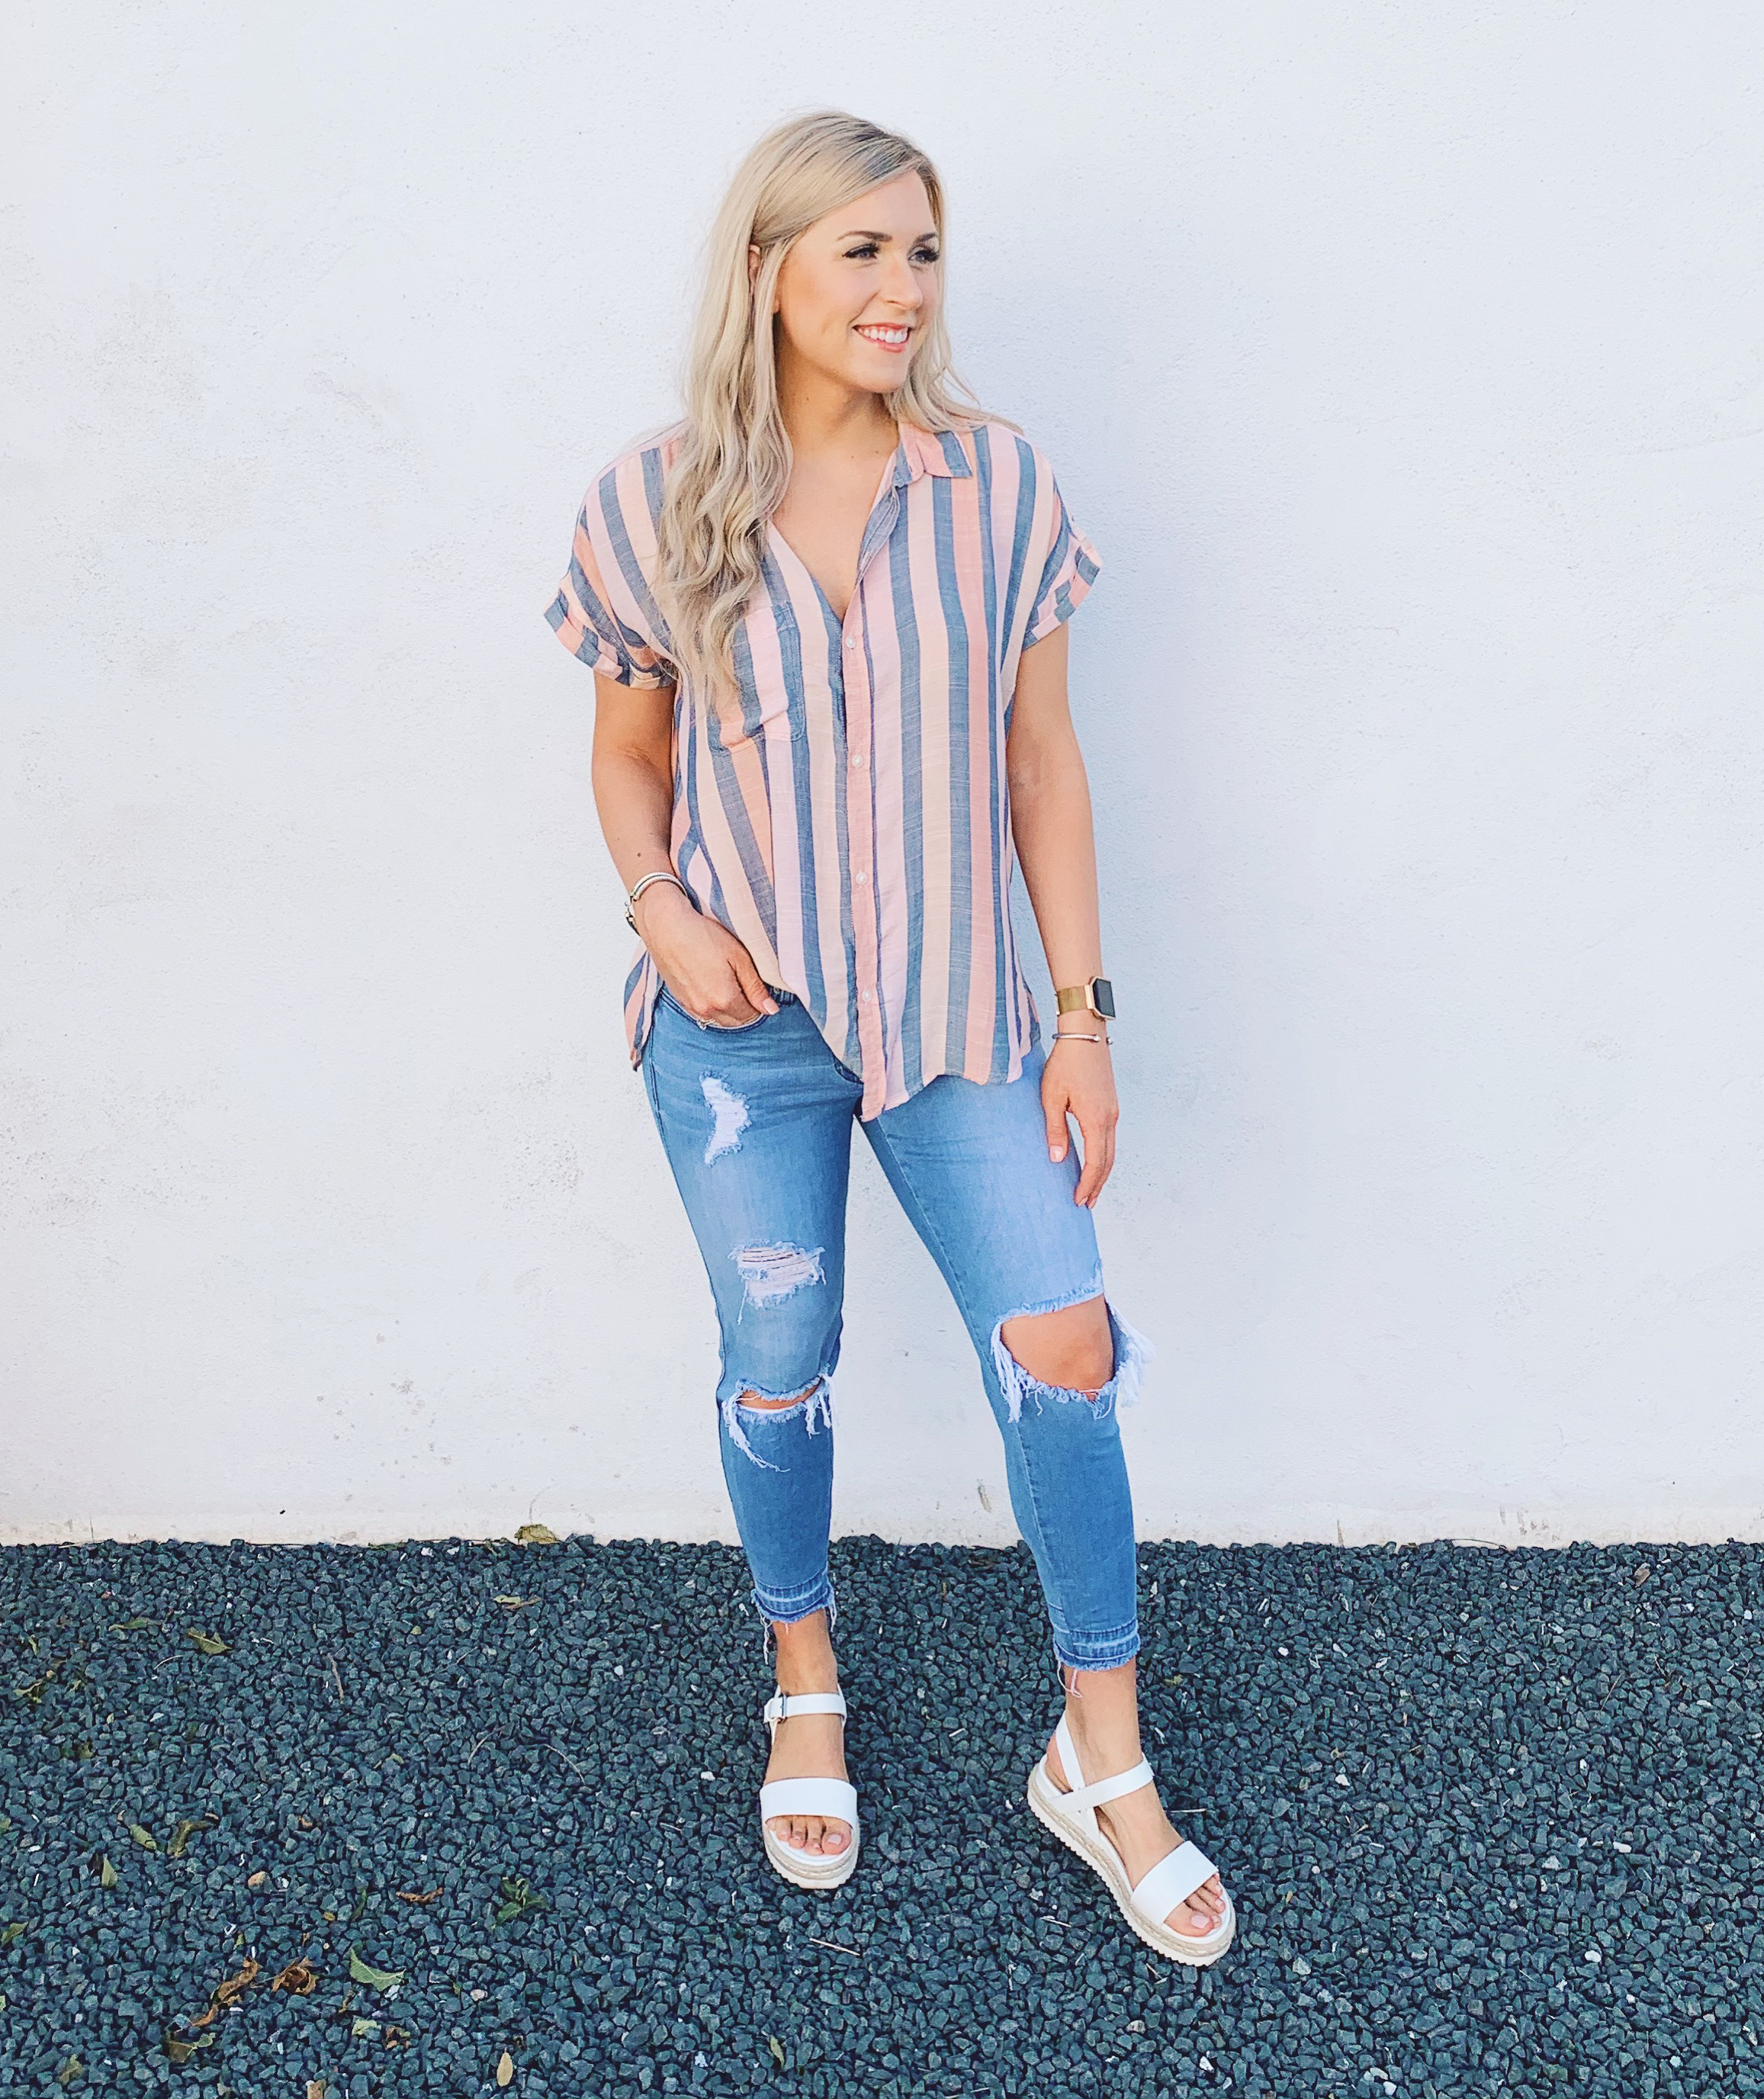 Mallory Ming Ennis is a lifestyle, fitness, fashion, and mom blogger in Central Texas